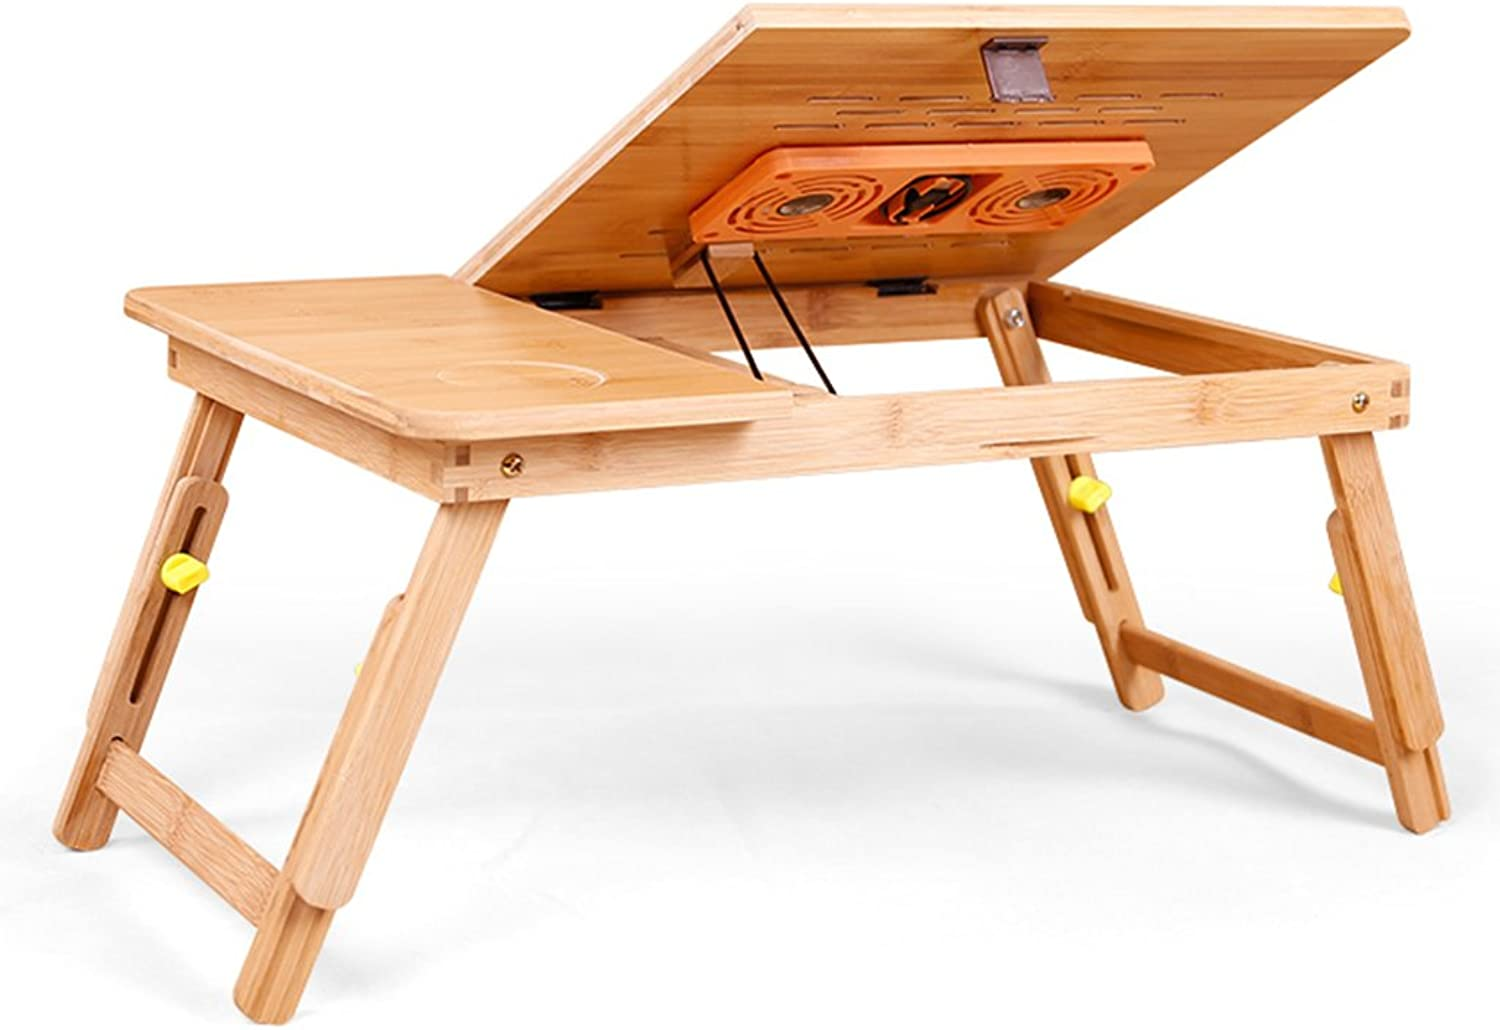 Laptop Table with Fan for Sofa and Bed, Bamboo Portable Multipurpose Folding Desk